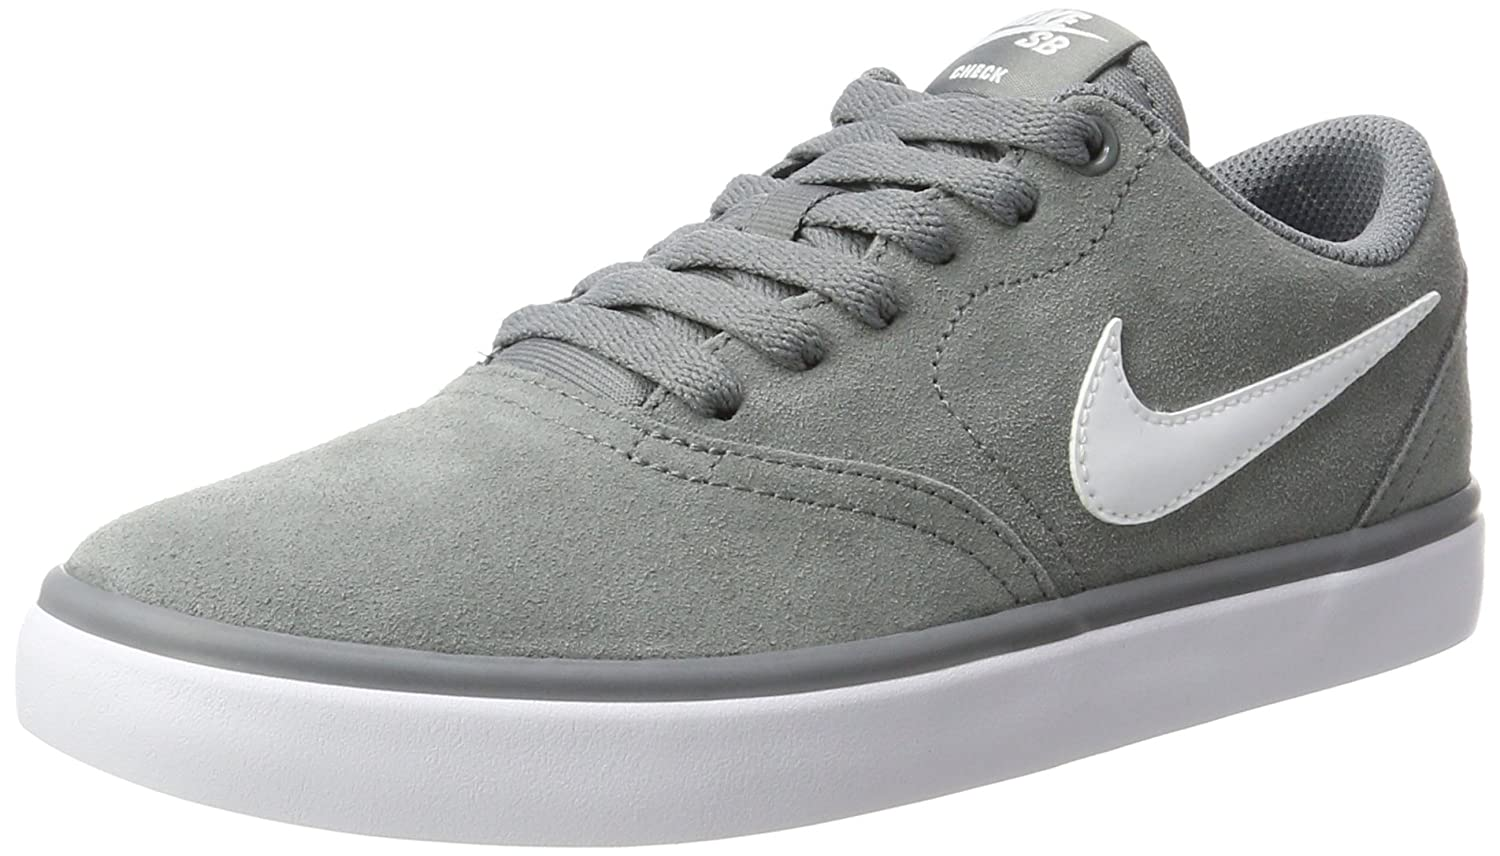 NIKE Men's SB Check Solar Skate Shoe B0178Q3WB2 14 D(M) US|Cool Grey White